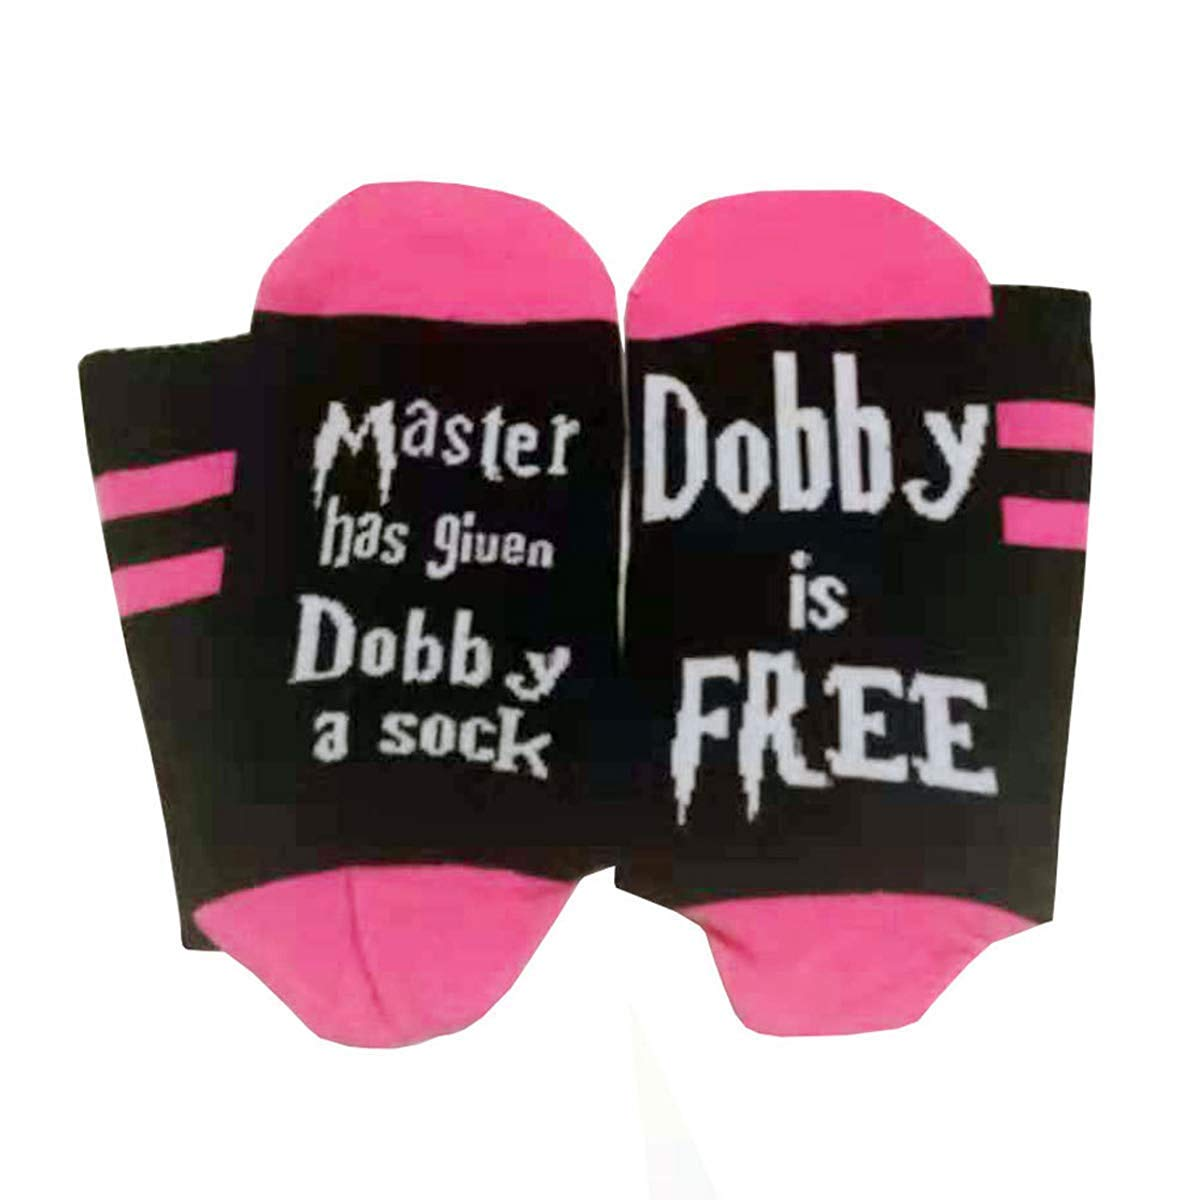 NO& DISTURB Master Has Given Dobby a Sock Dobby is Free Harry Potter Funny Crew socks Gift (Pink) HY-socks001